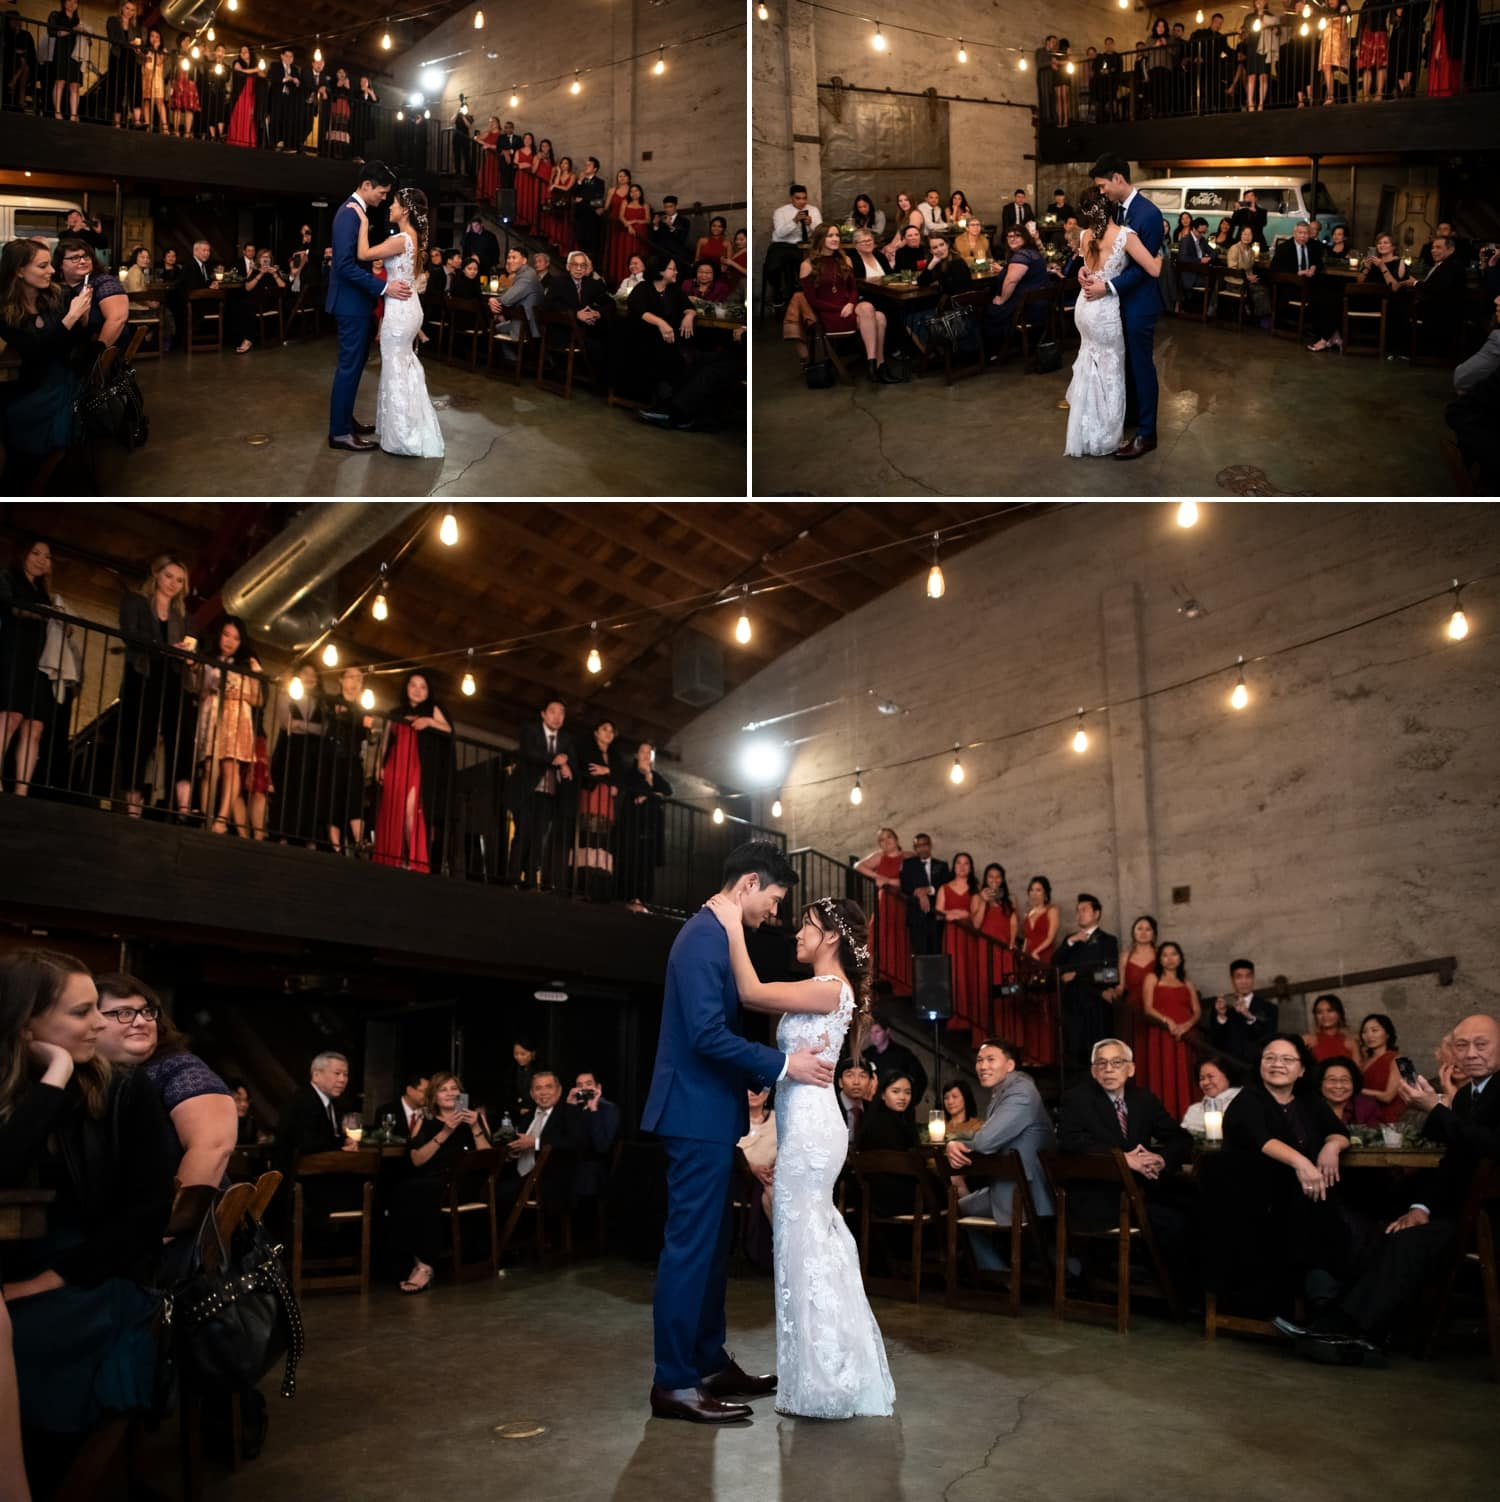 Bride and groom's first dance at Luce Loft.